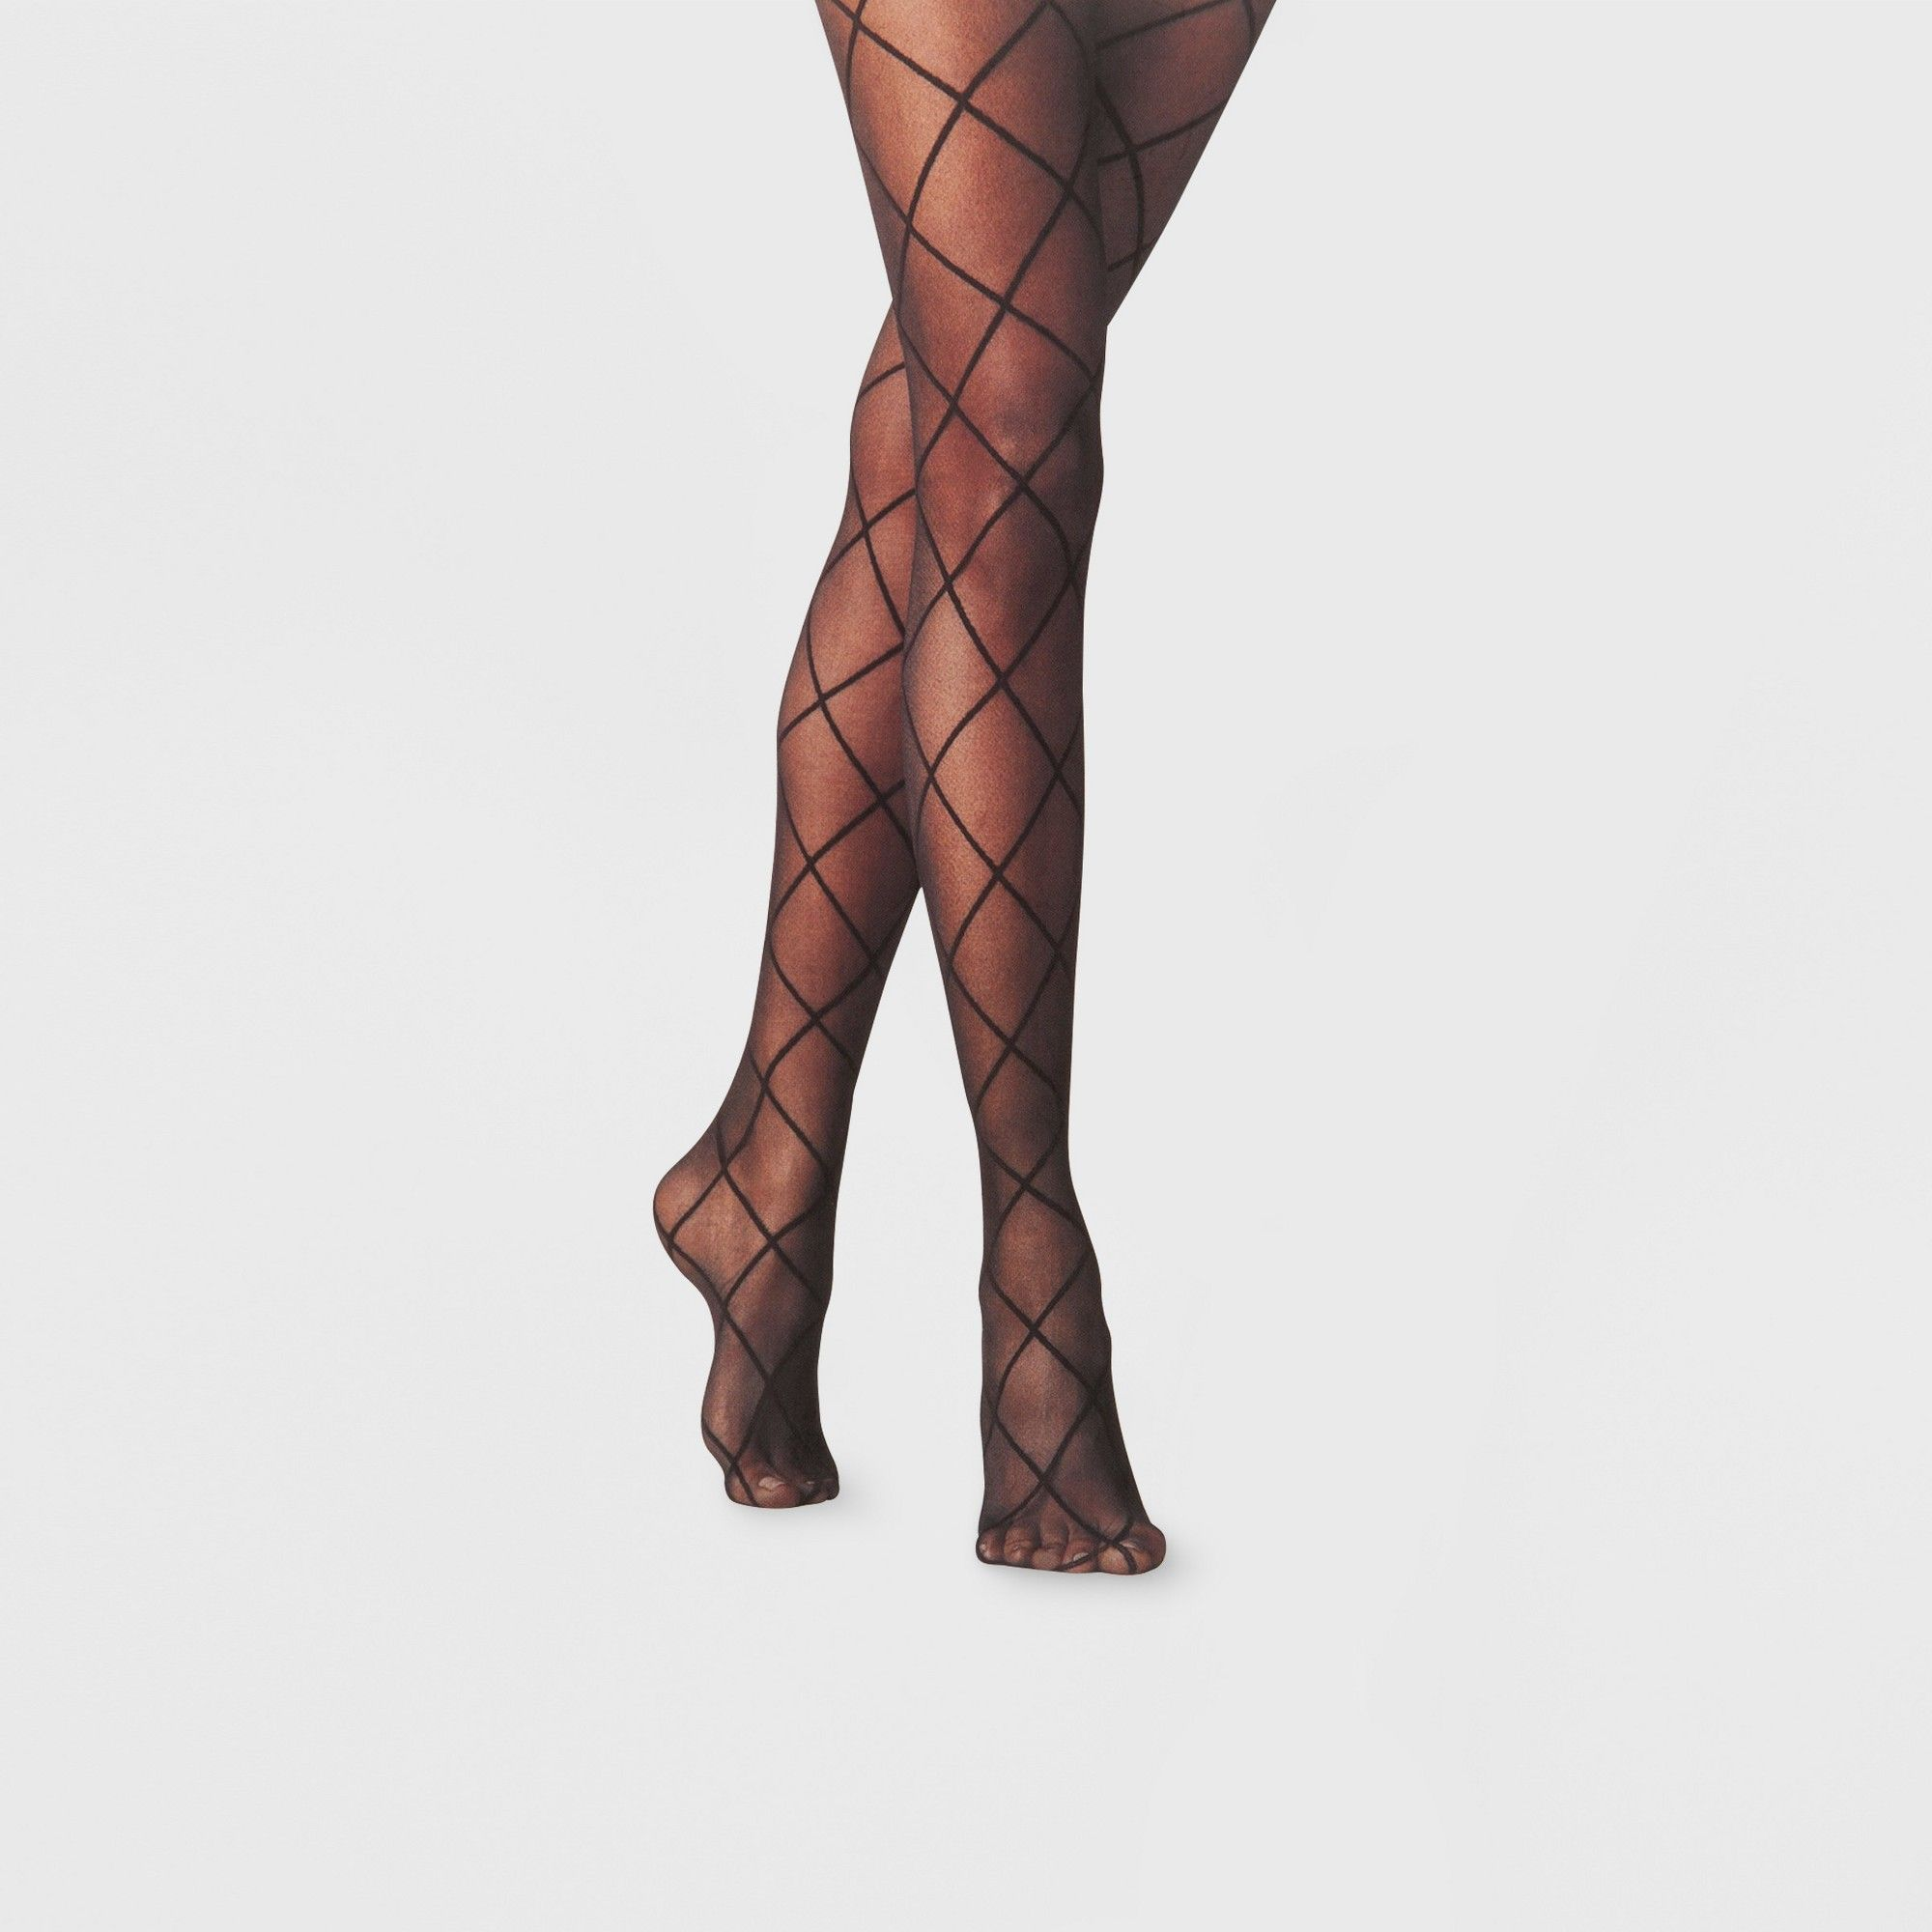 1x 2x Pair Woman Lace Ankle High Socks Sheer Durable Fishnet Everyday  Colour